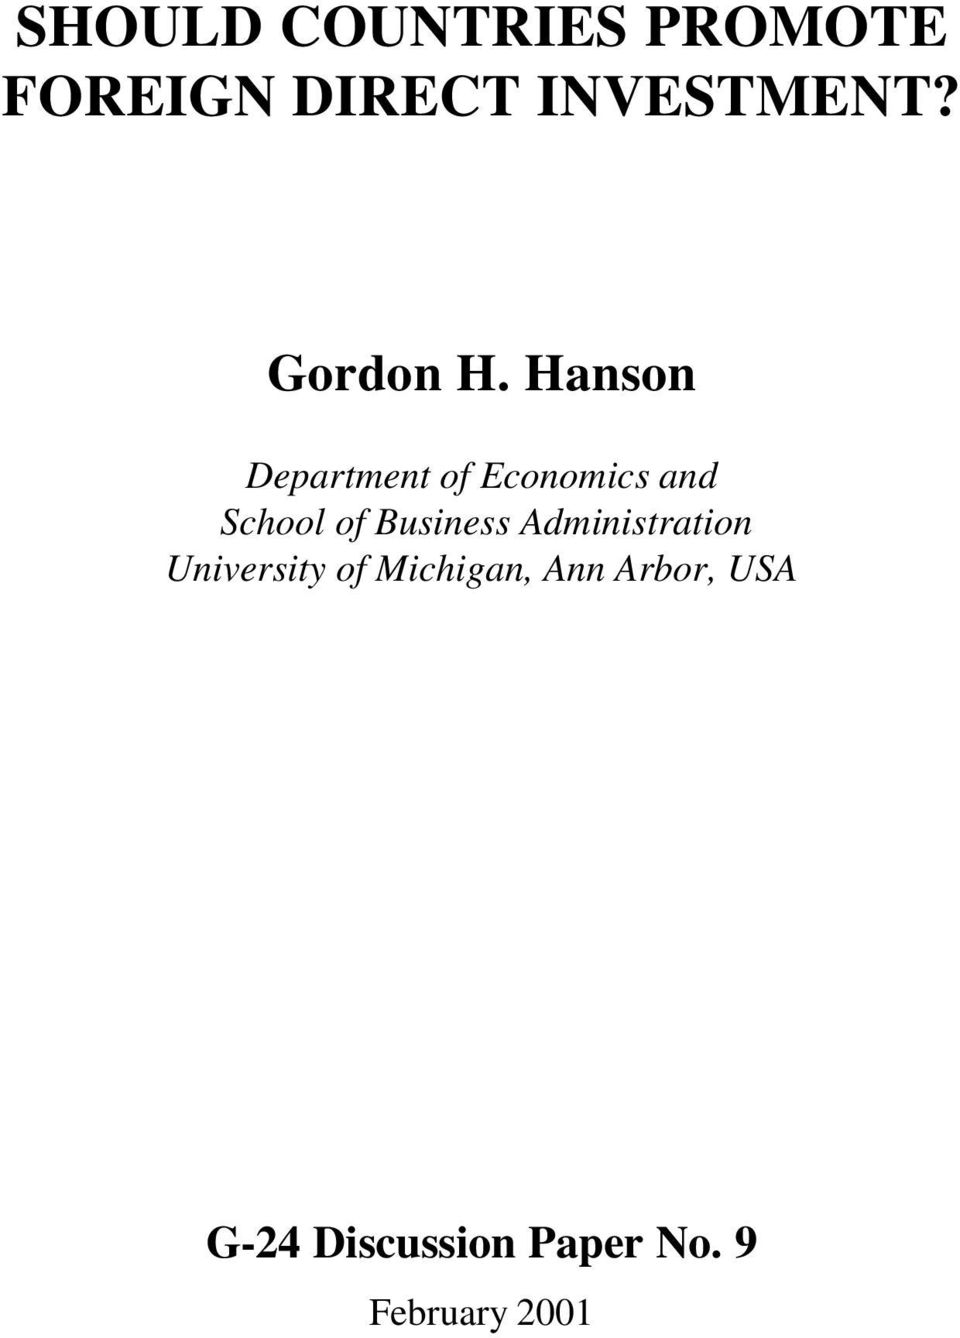 Hanson Department of Economcs and School of